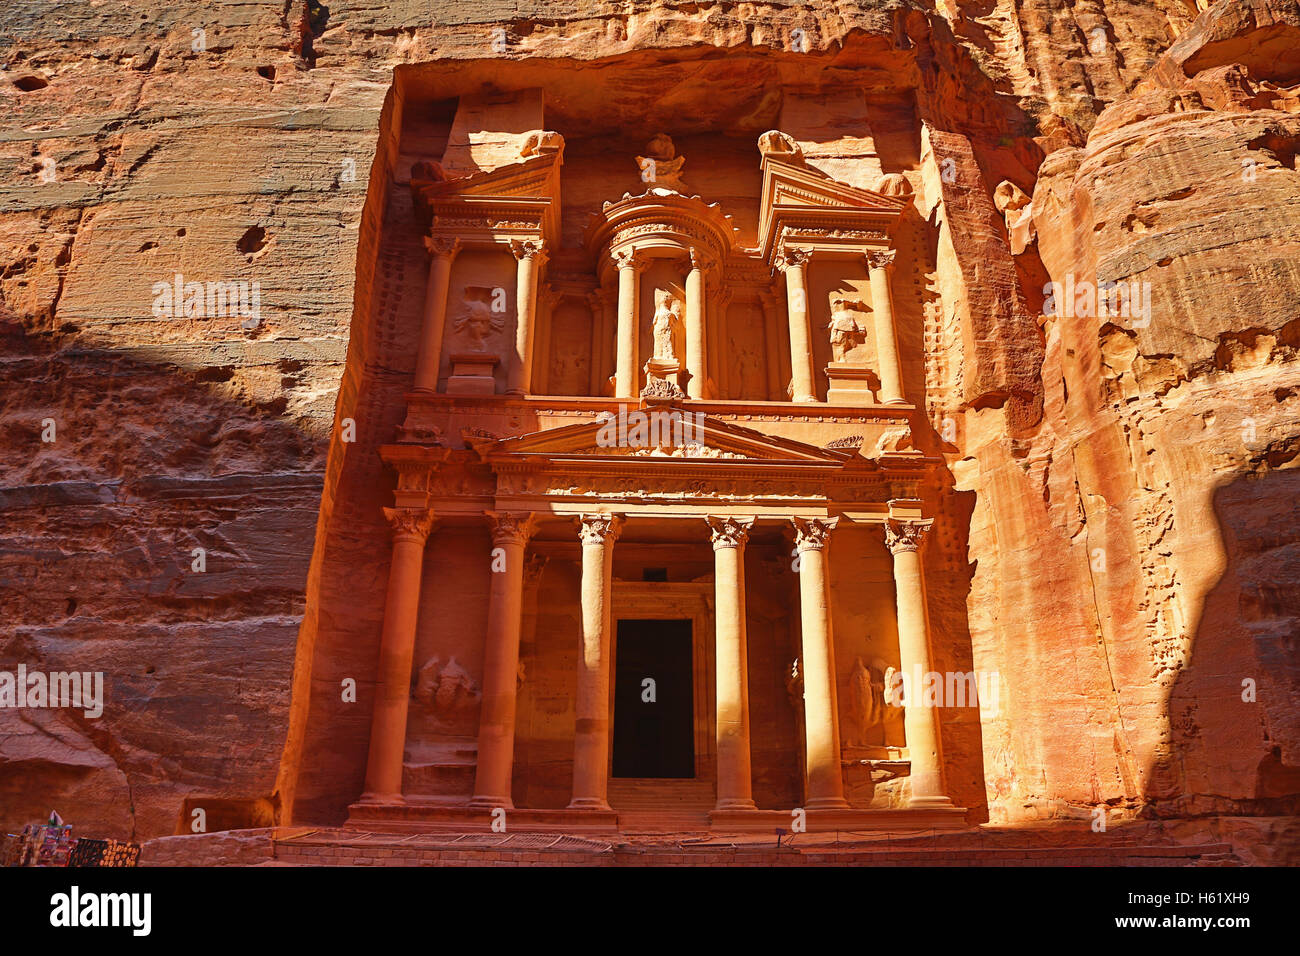 View of the Treasury, Al-Khazneh, Petra, Jordan - Stock Image